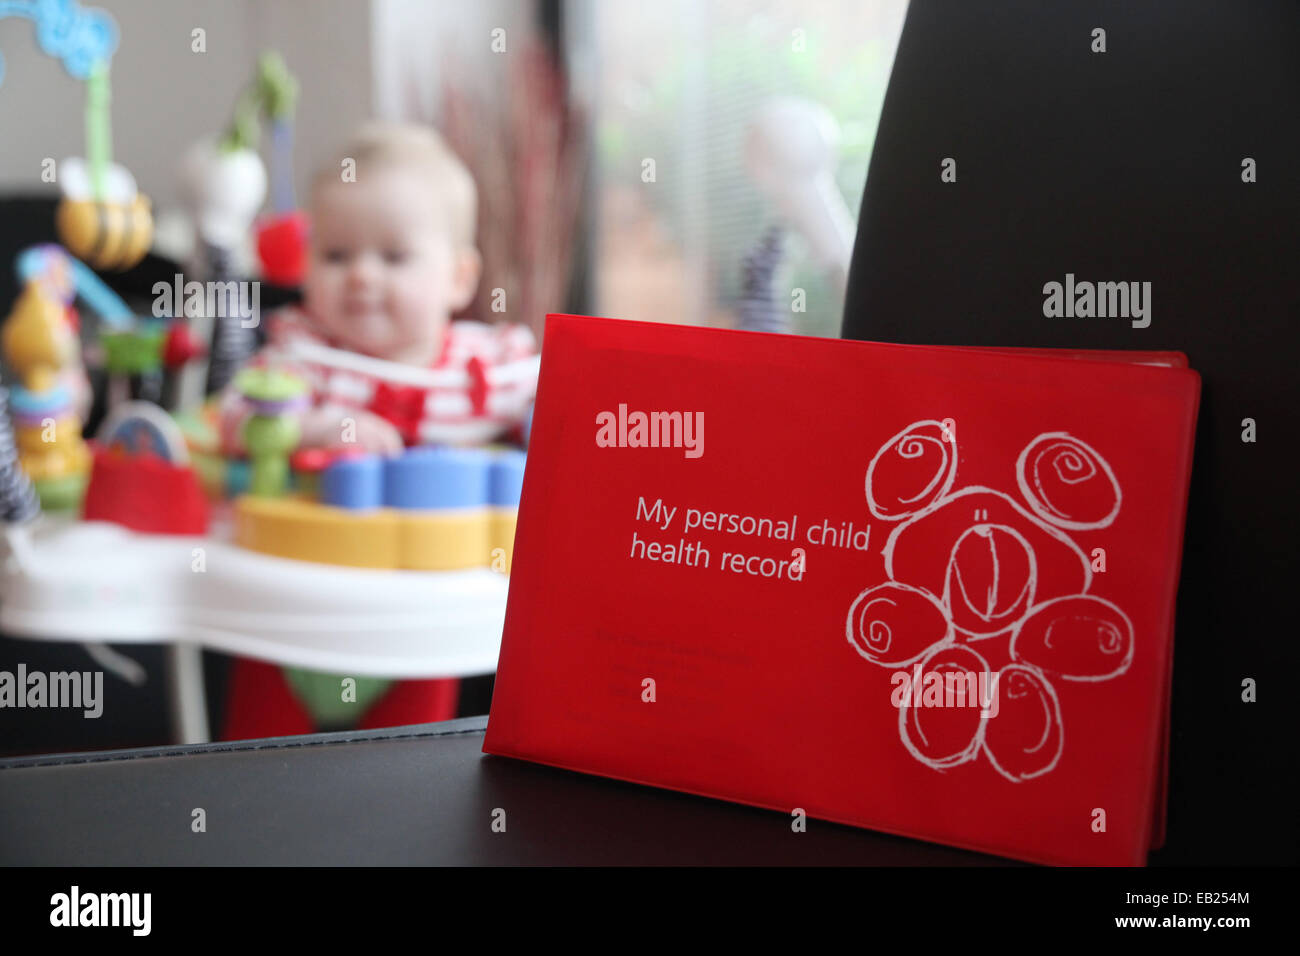 A red personal child health record book, issued to new children born in the UK and taken to each development appointment. - Stock Image